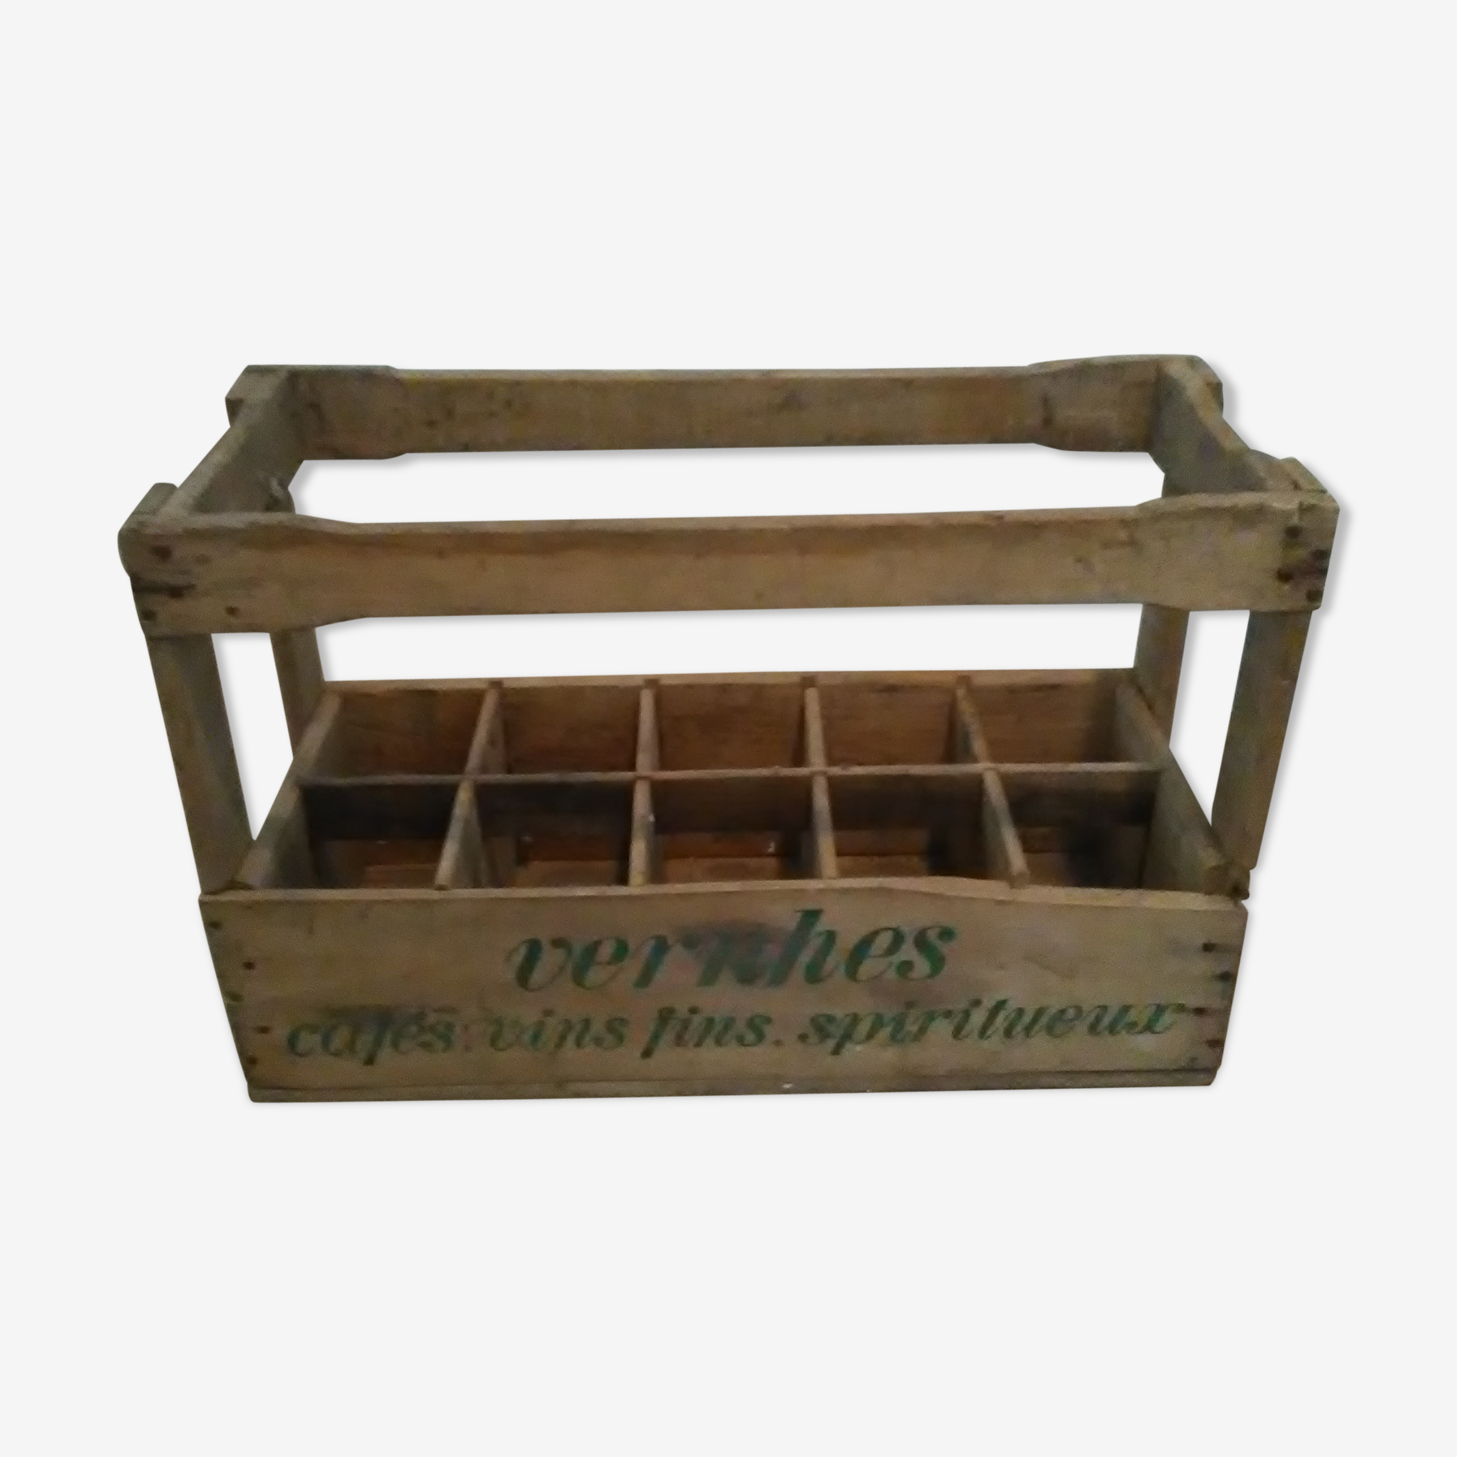 Bottles in wooden box